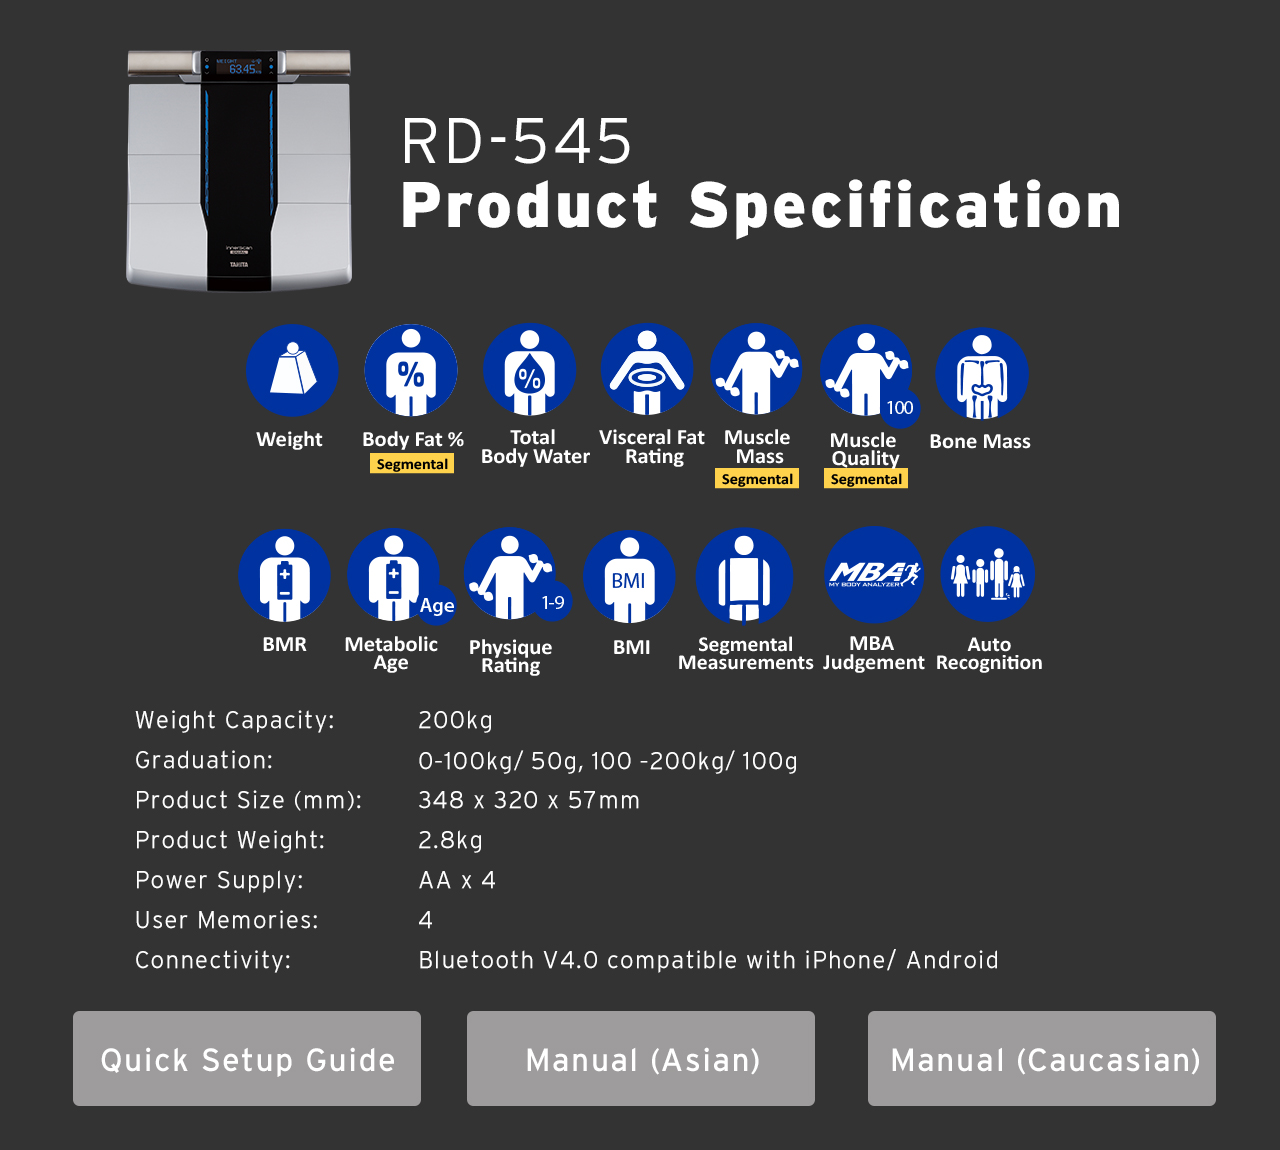 rd 545 the no 1 segmental body composition monitor for smartphones\